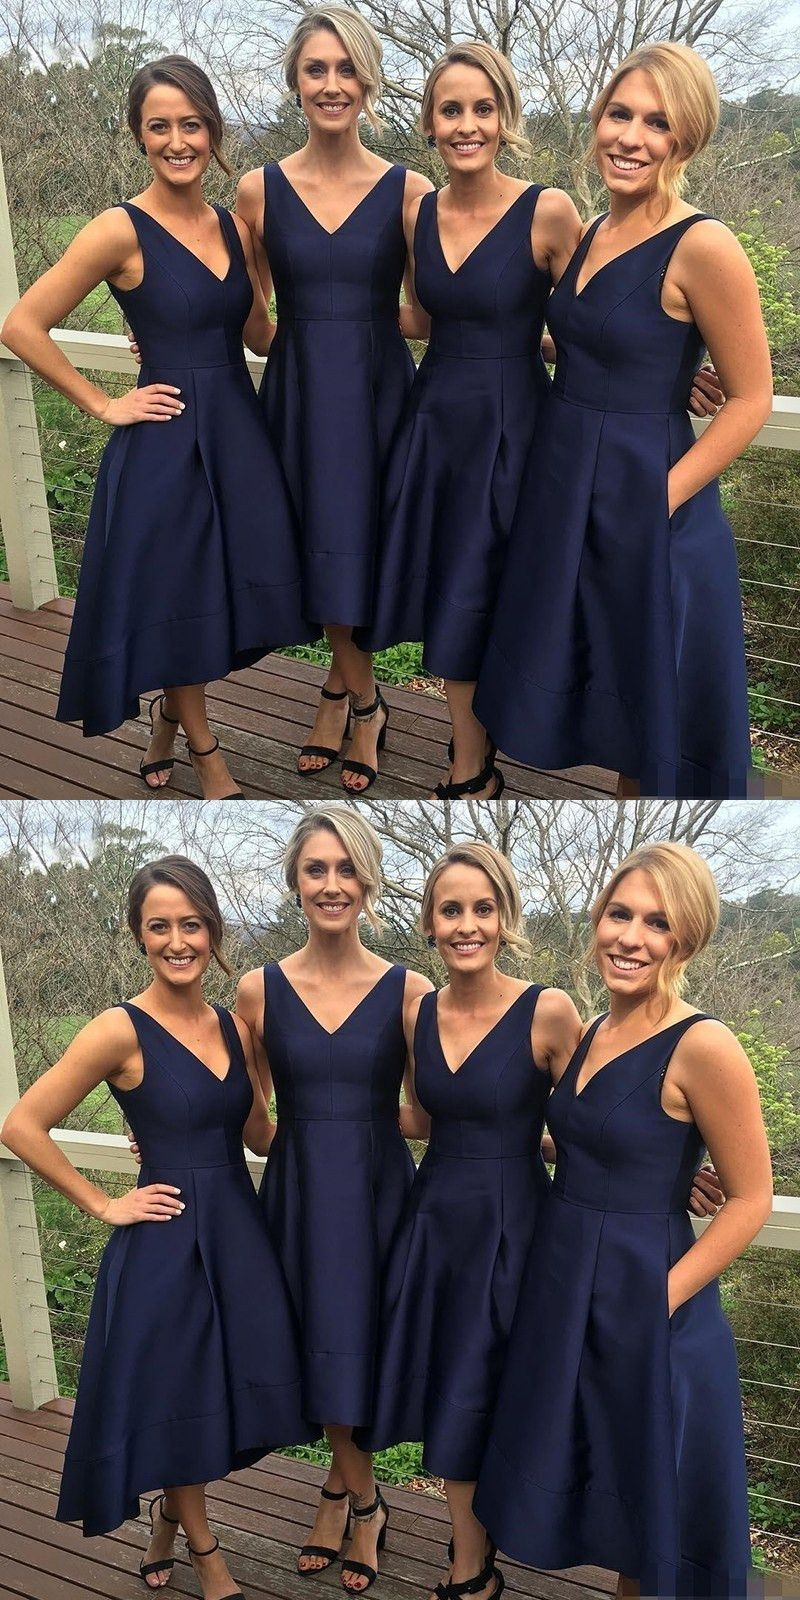 Pin by Happily Ever Borrowed on Badass Bridesmaids